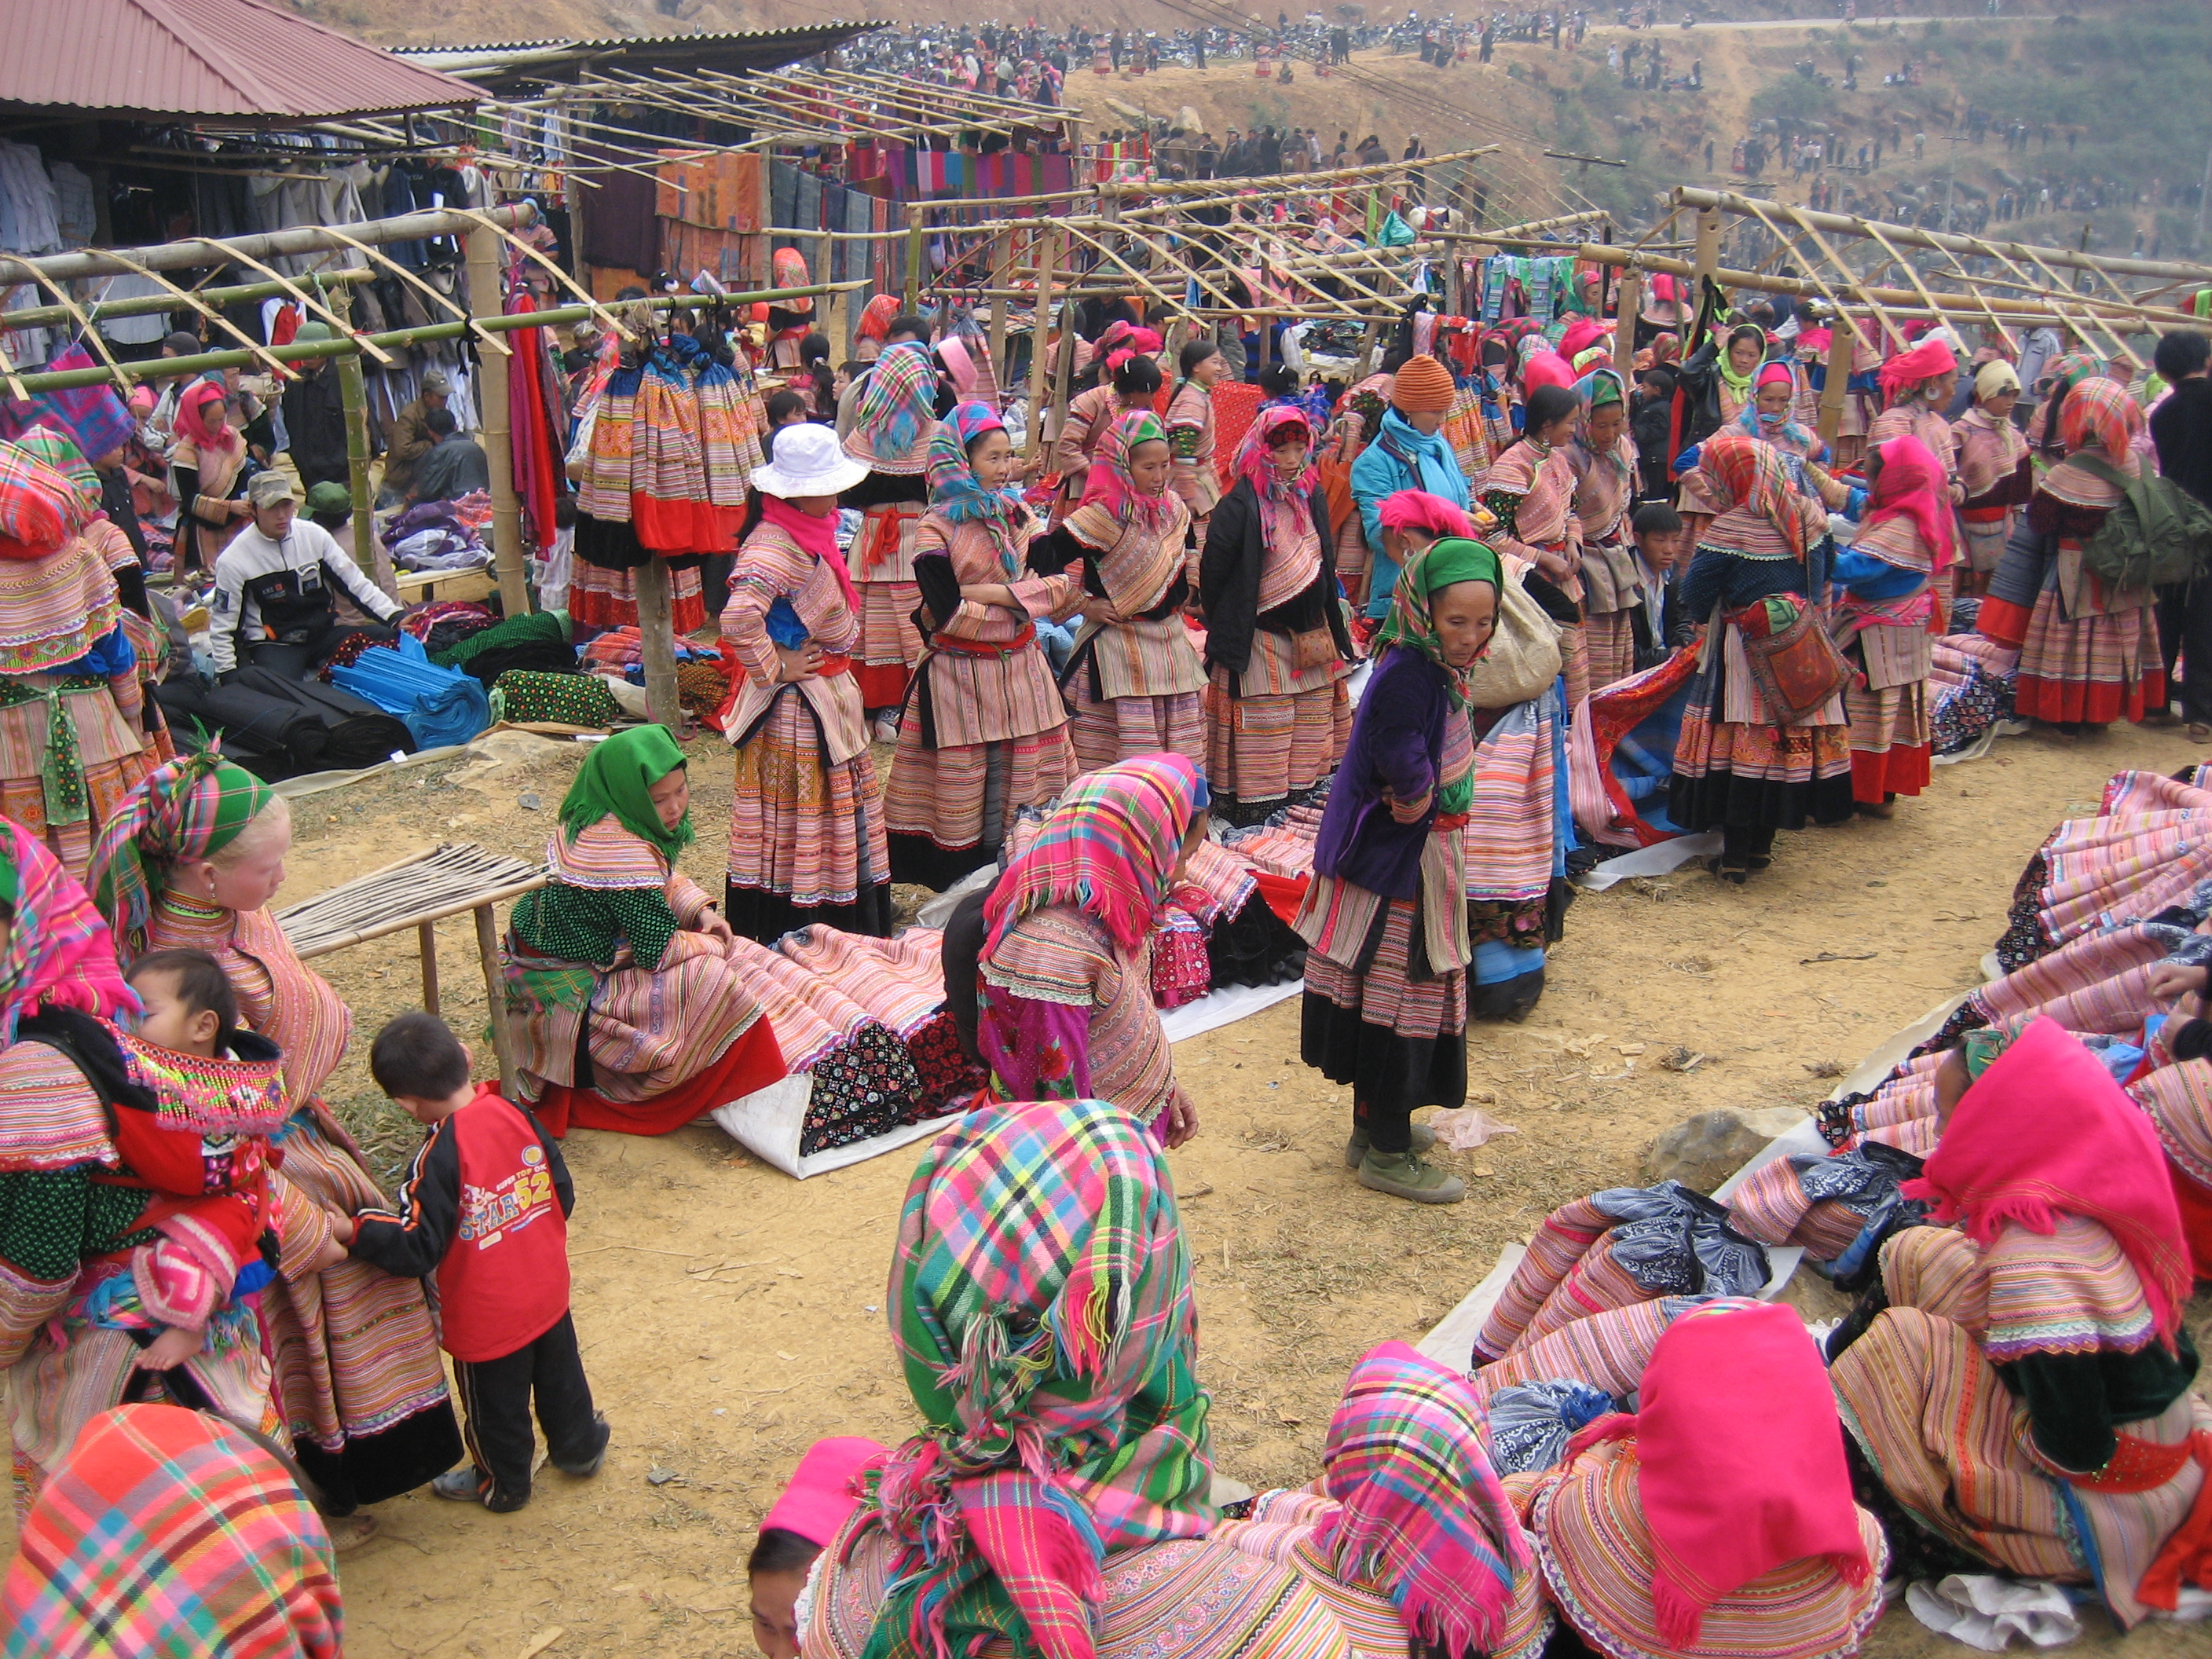 Hmong_people.jpg